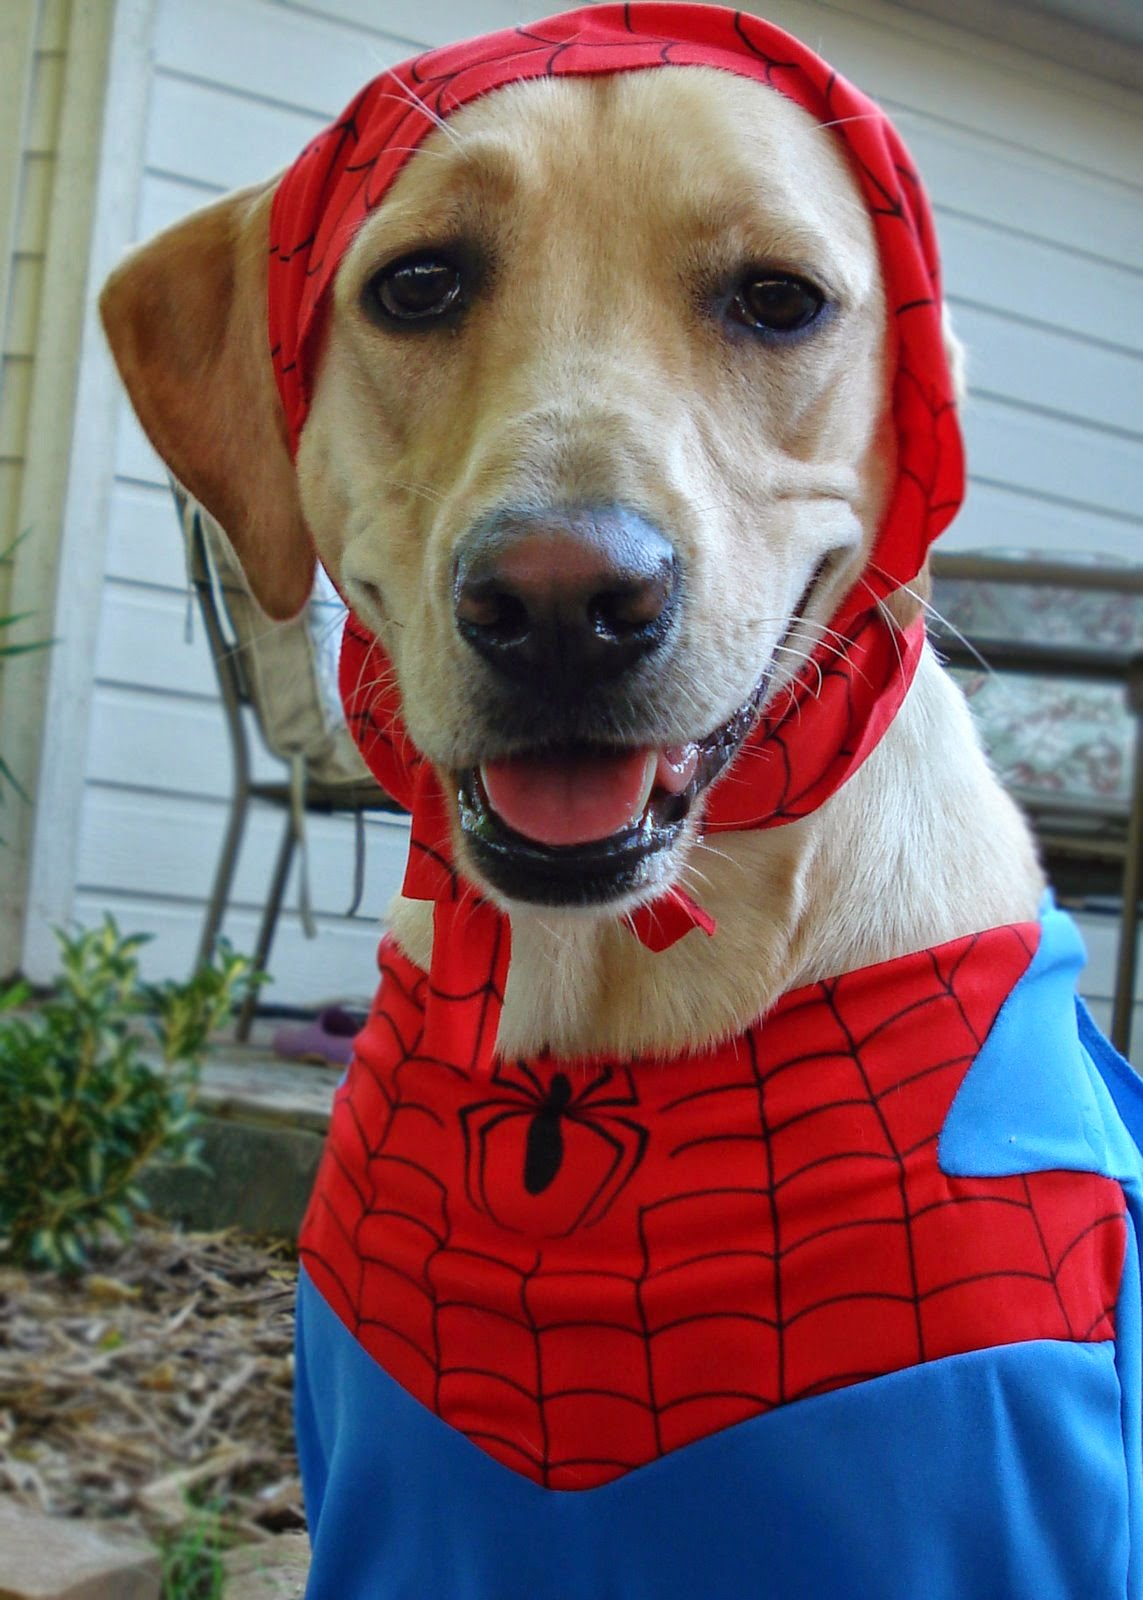 My Most Embarring Moment Should Be That I Dressed Her Up In A Dog Spiderman Costume For Ve Always Loved Theme